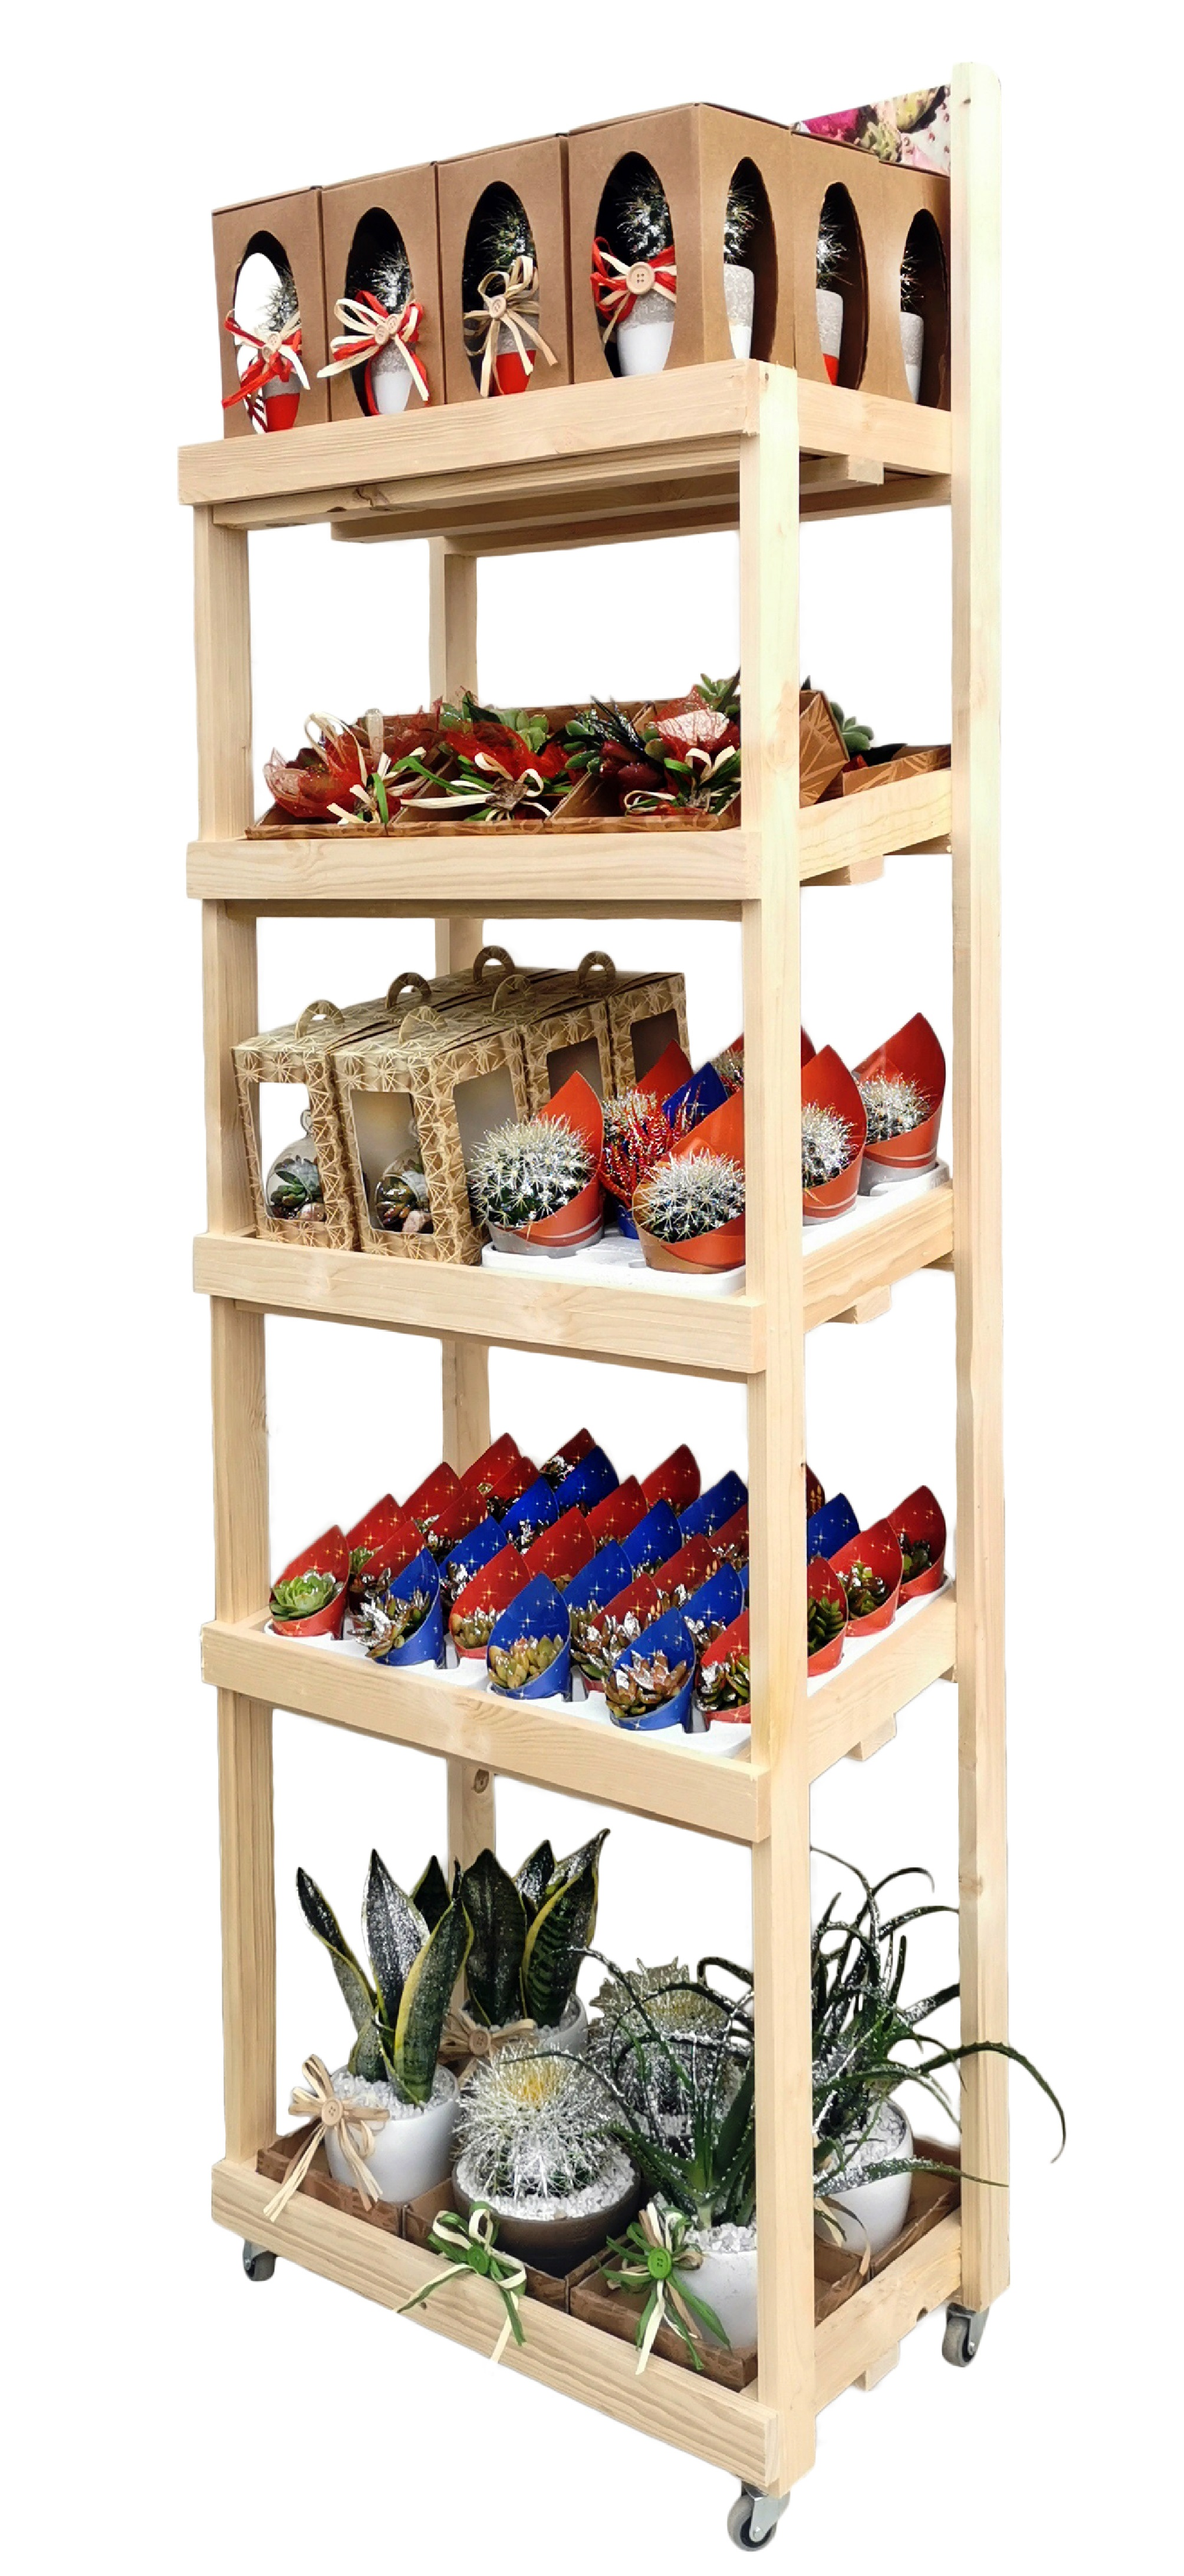 WOODEN EXHIBITOR WITH WHEELS GDO -MIX SUCCULENTS & CACTUS GLITTERS- 60 X 40 X H 170 5 SHELVES | Giromagi